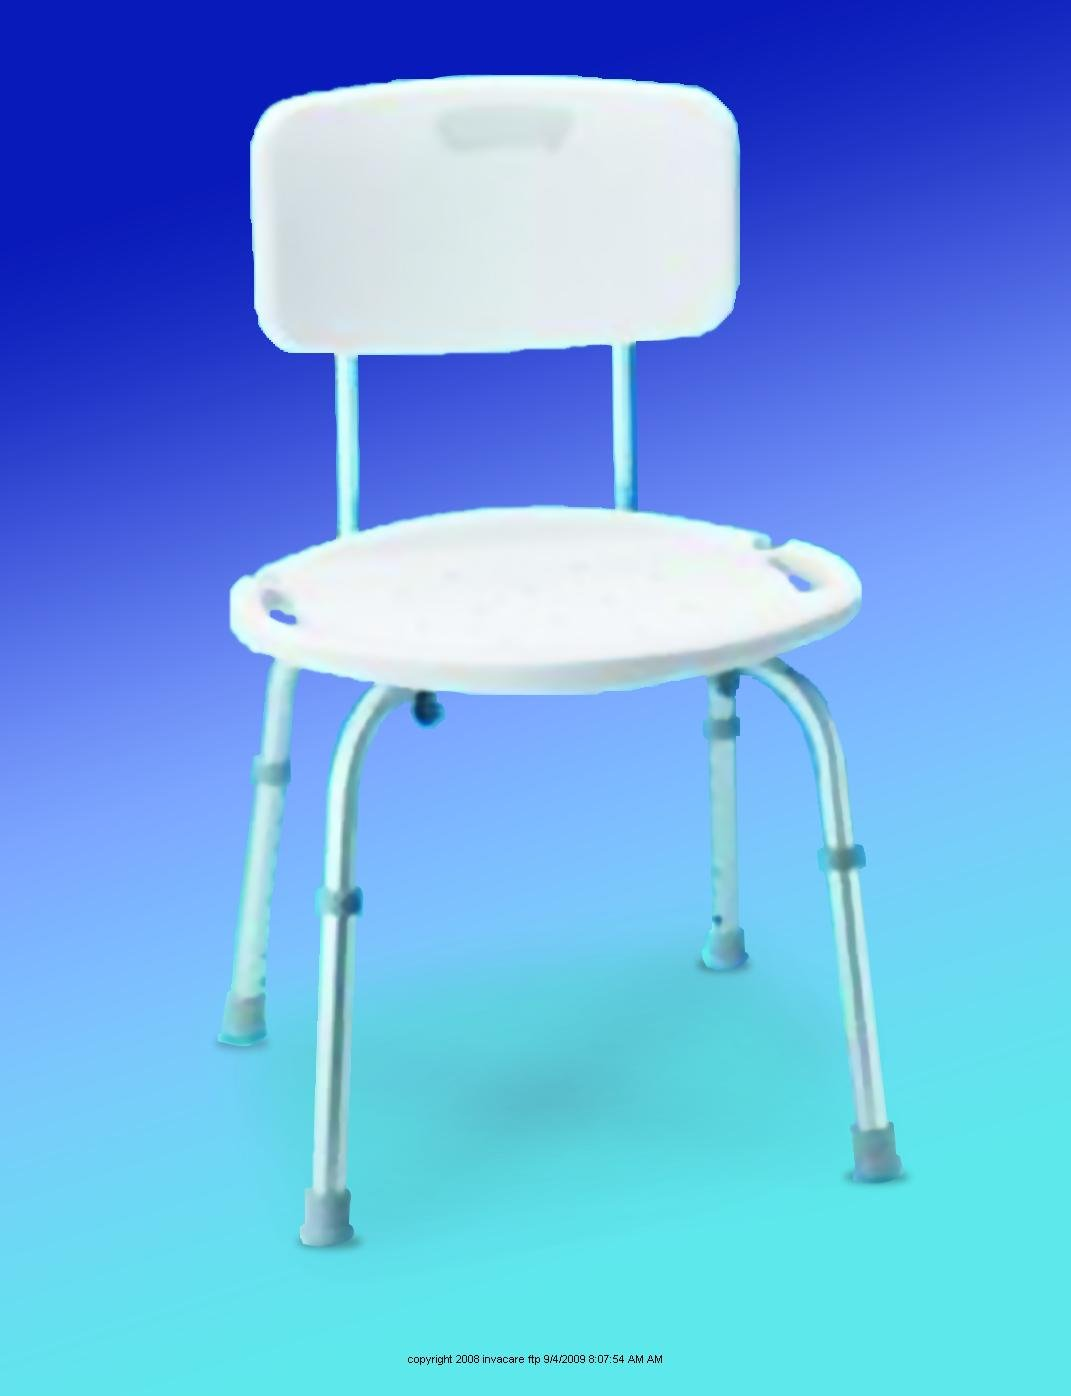 Colorful Carex Adjustable Bath And Shower Seat With Back